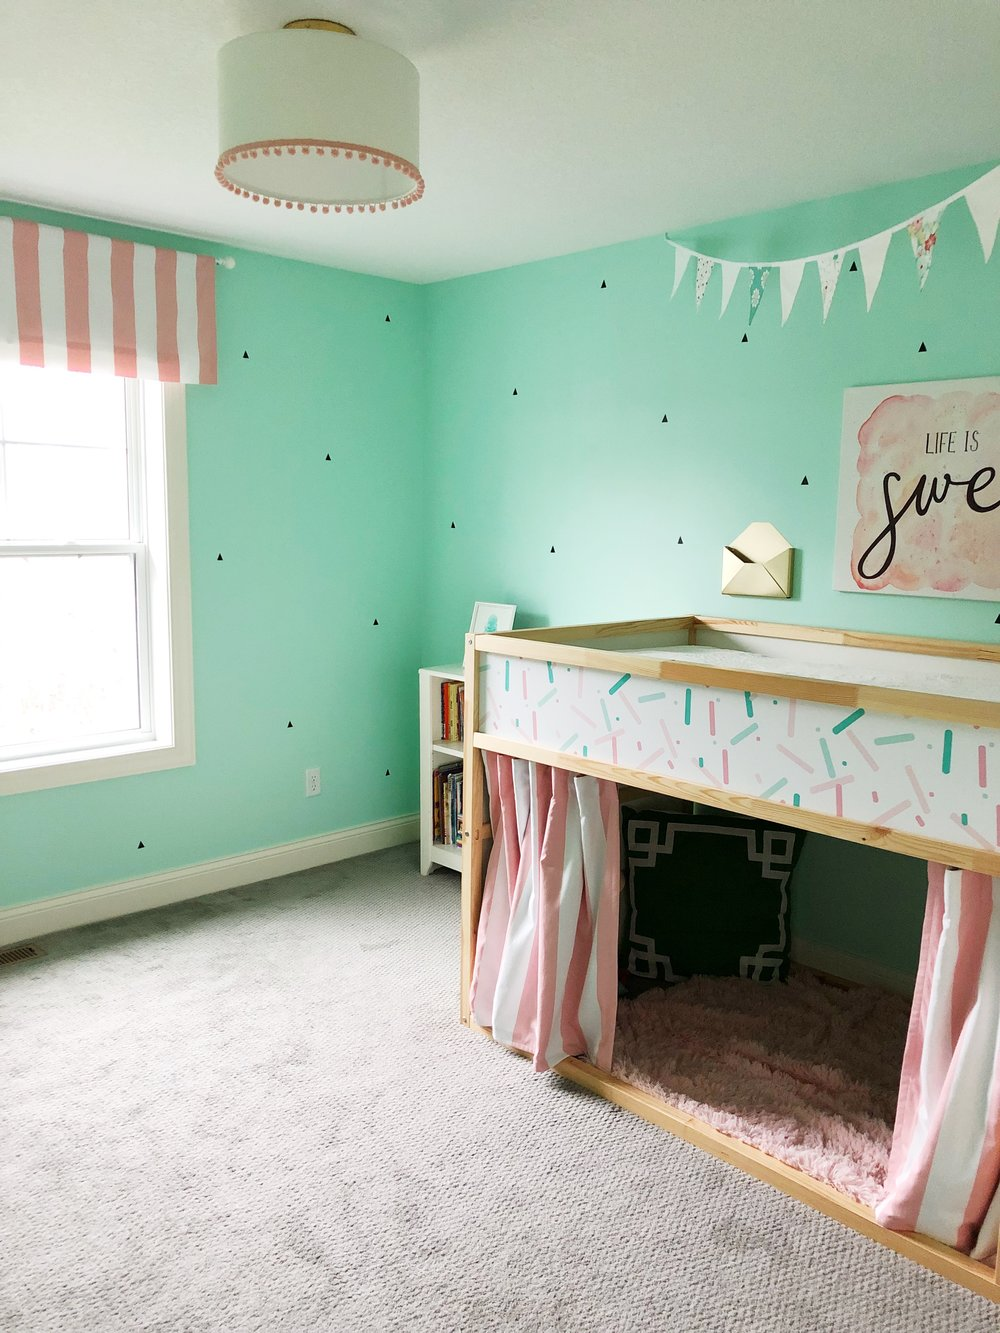 Ice Cream Social Bedroom. Girl's bedroom makeover. Pink and mint girls bedroom.